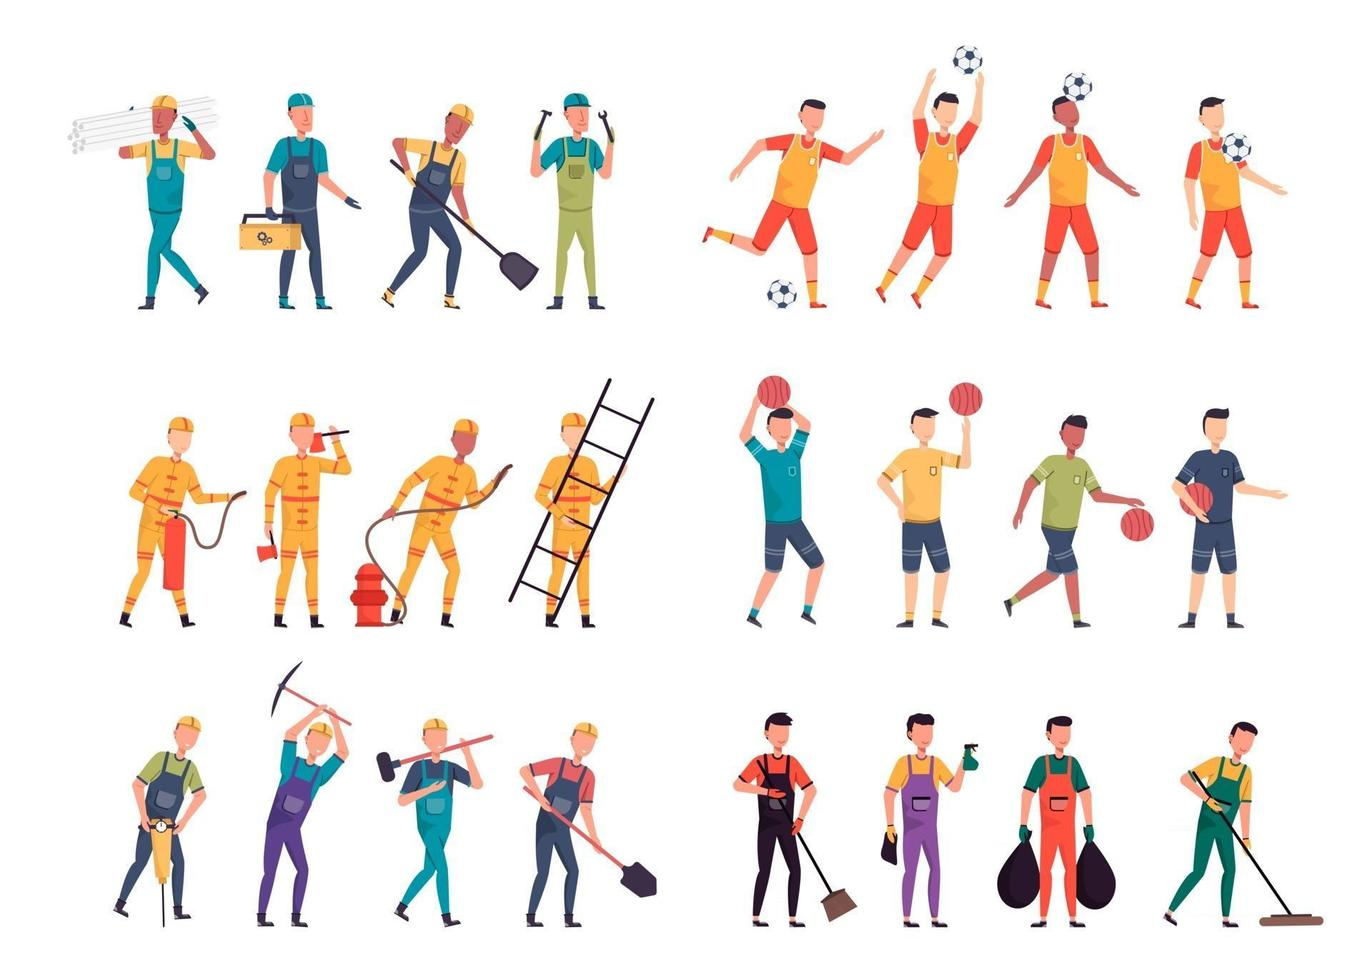 Bundle of many career character 6 sets, 24 poses of various professions, lifestyles, vector